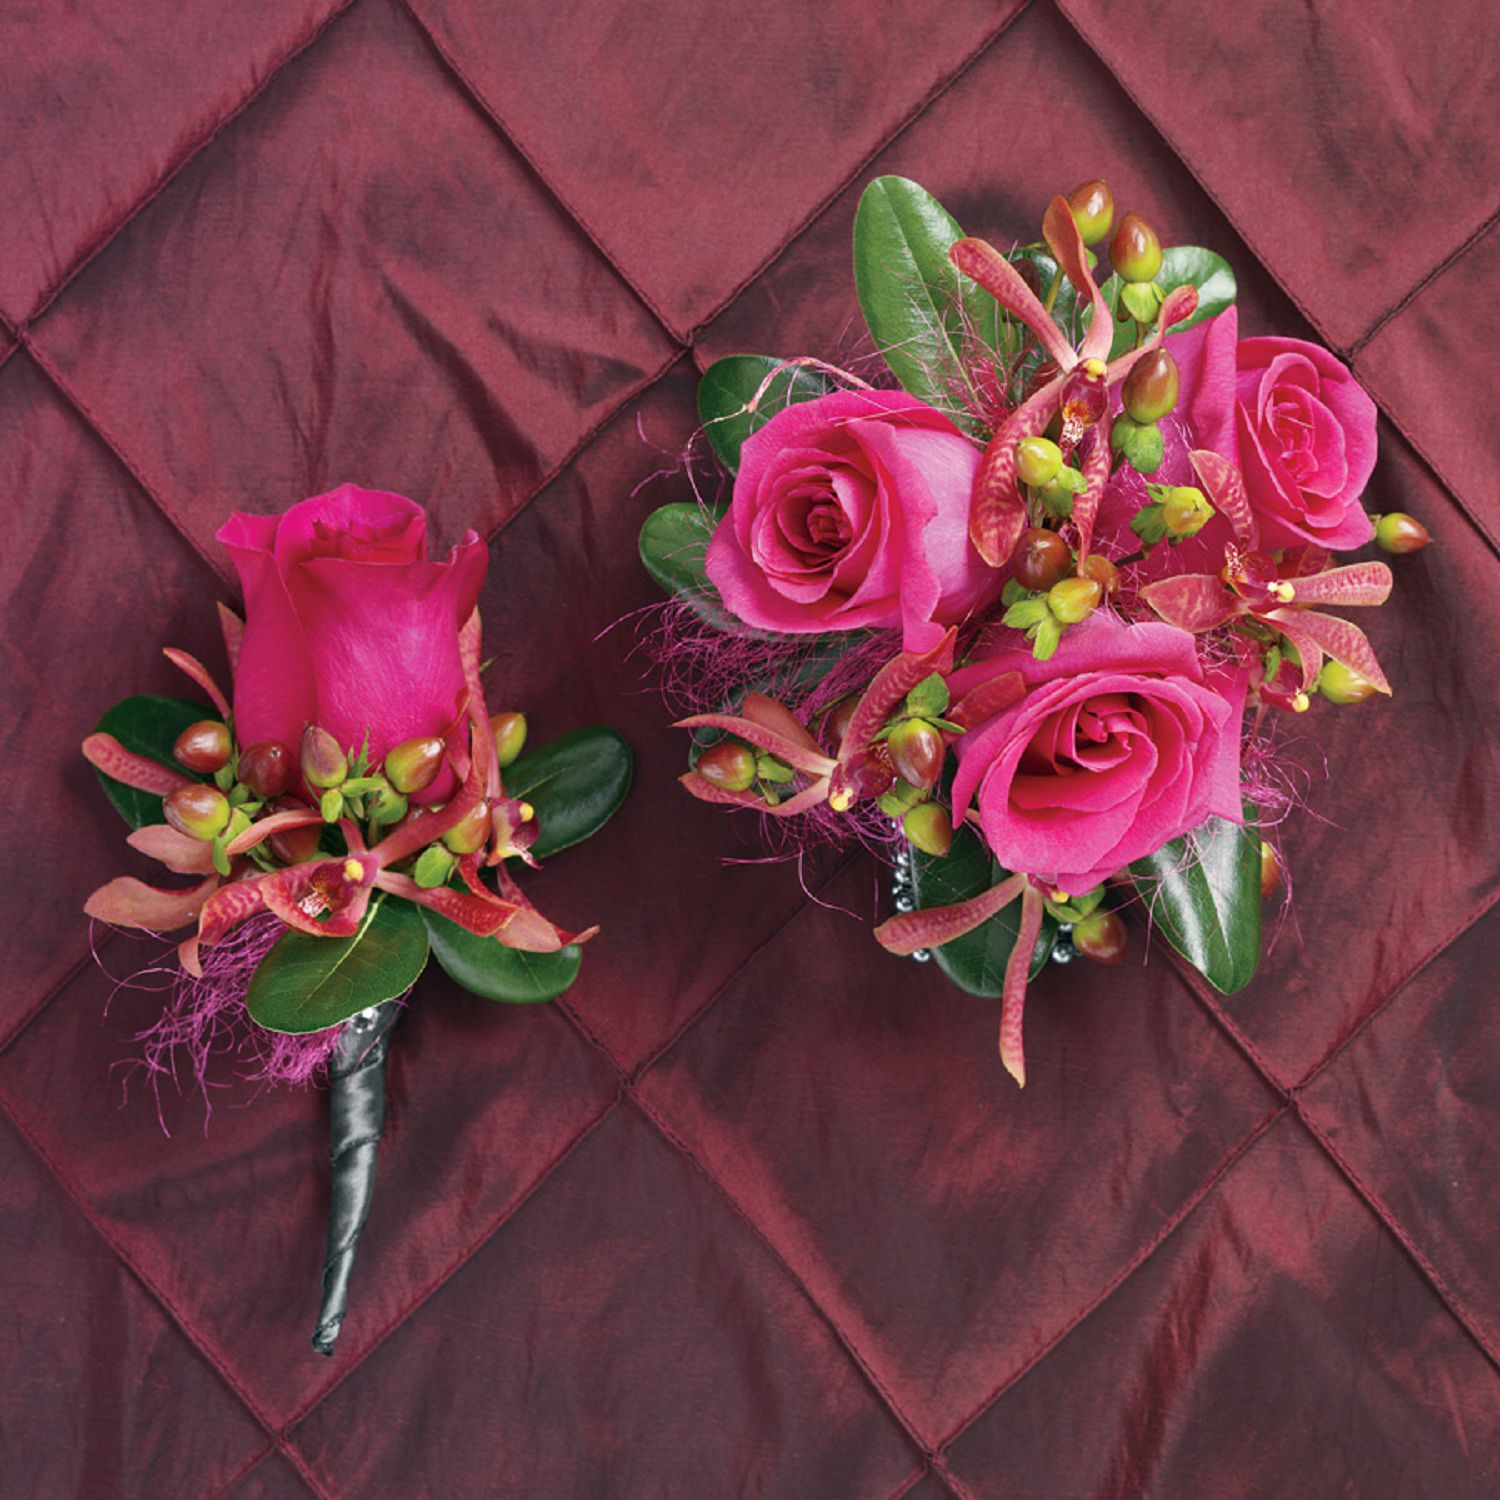 wilmington nc corsages and boutonnieres, Beautiful flower